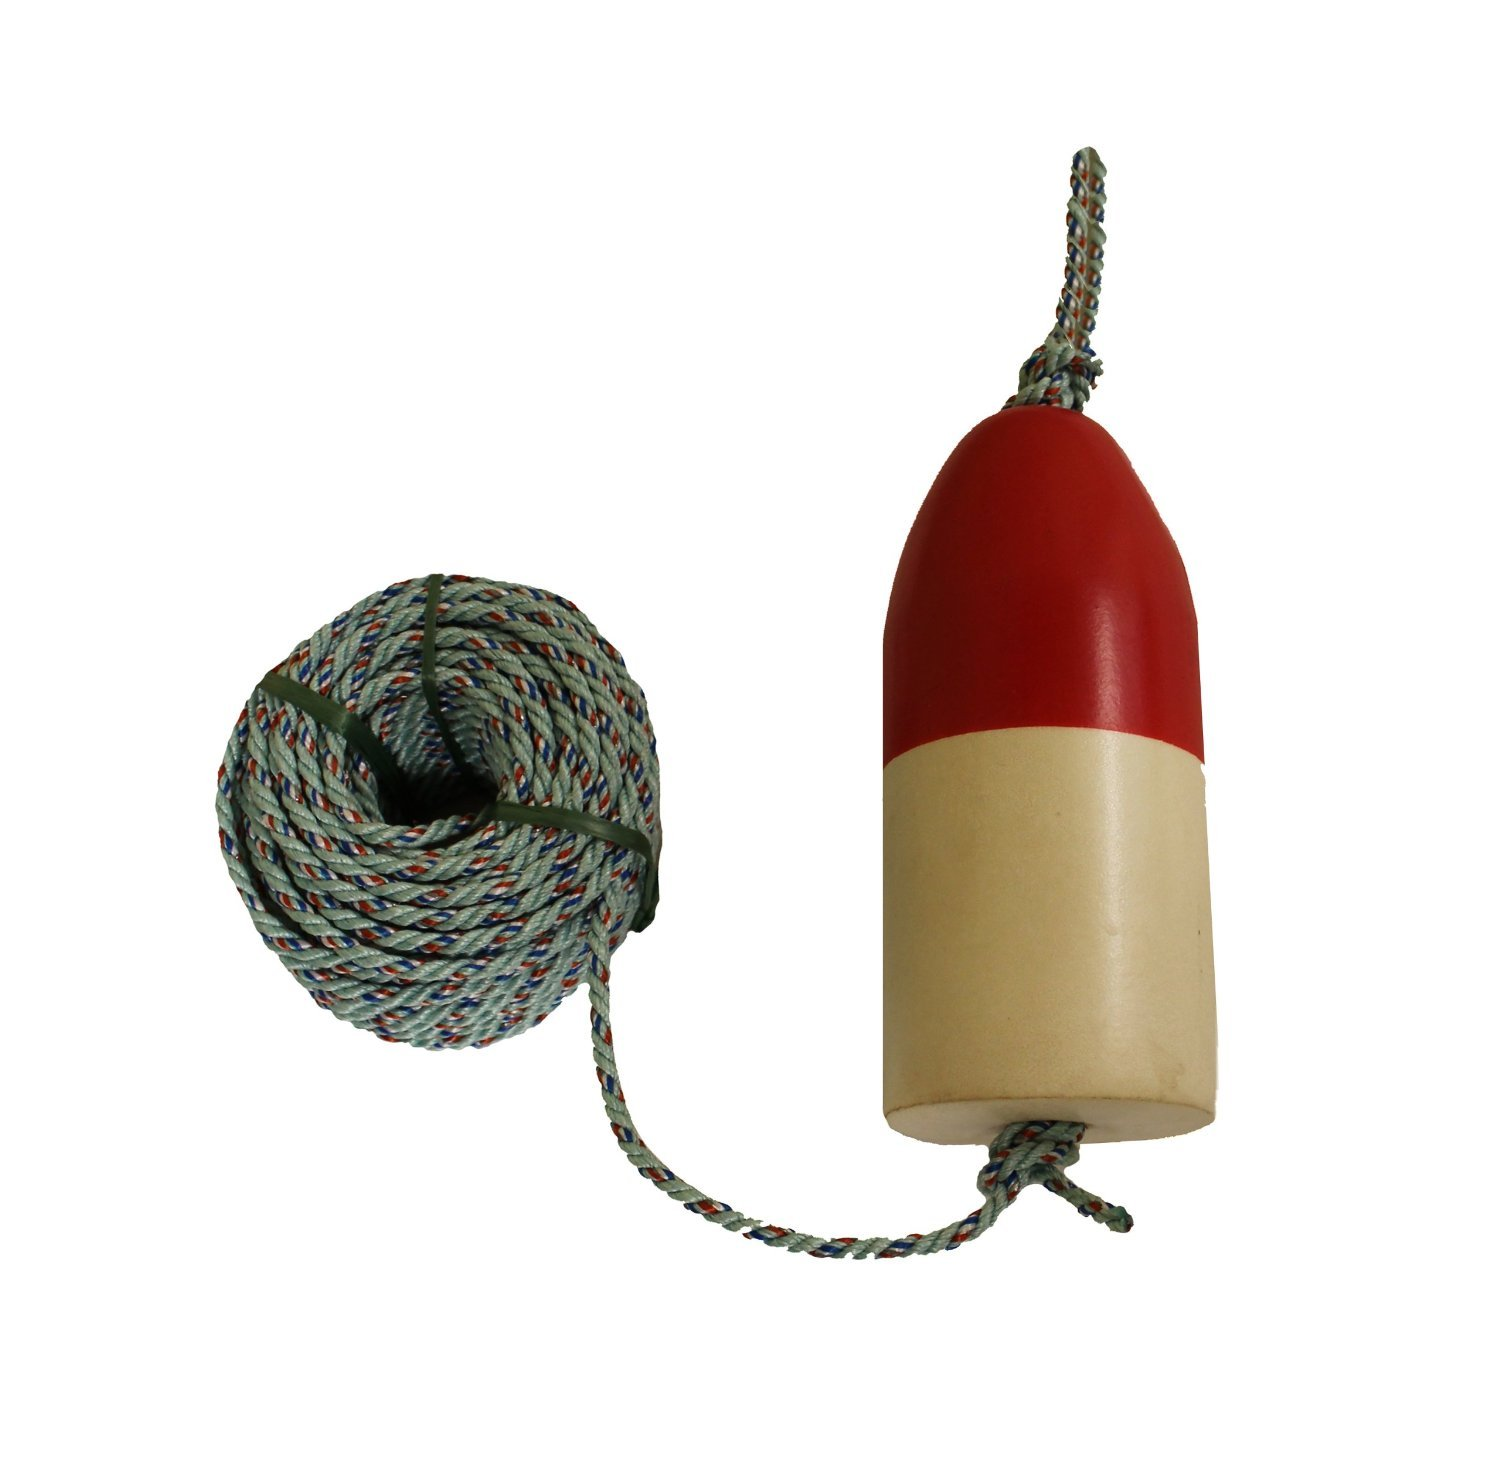 KUFA Sports 1/4 Diameter/100' Lead Core Rope & 11'' Red/White Float Combo